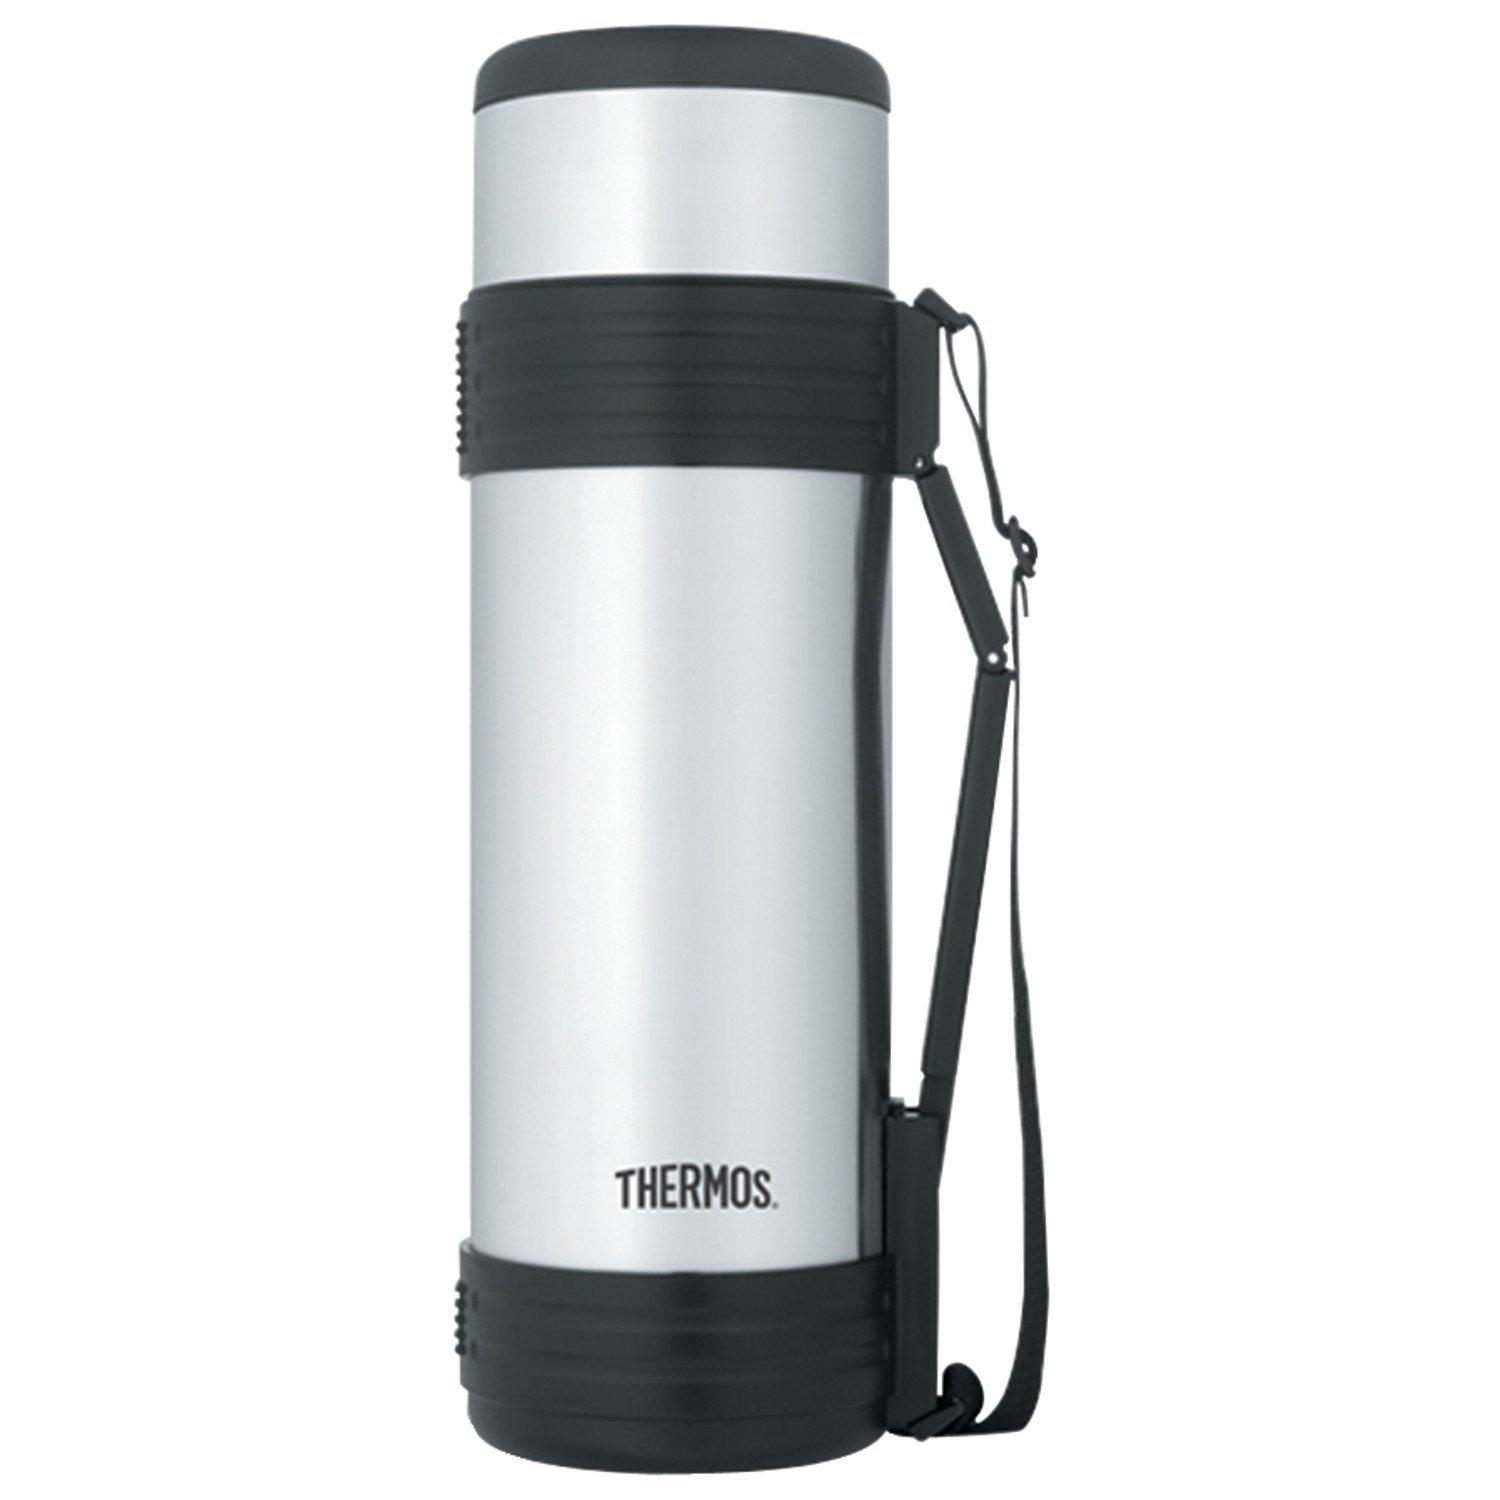 Thermos Vacuum Insulated Beverage Bottle with Folding Handle, 61-Ounce